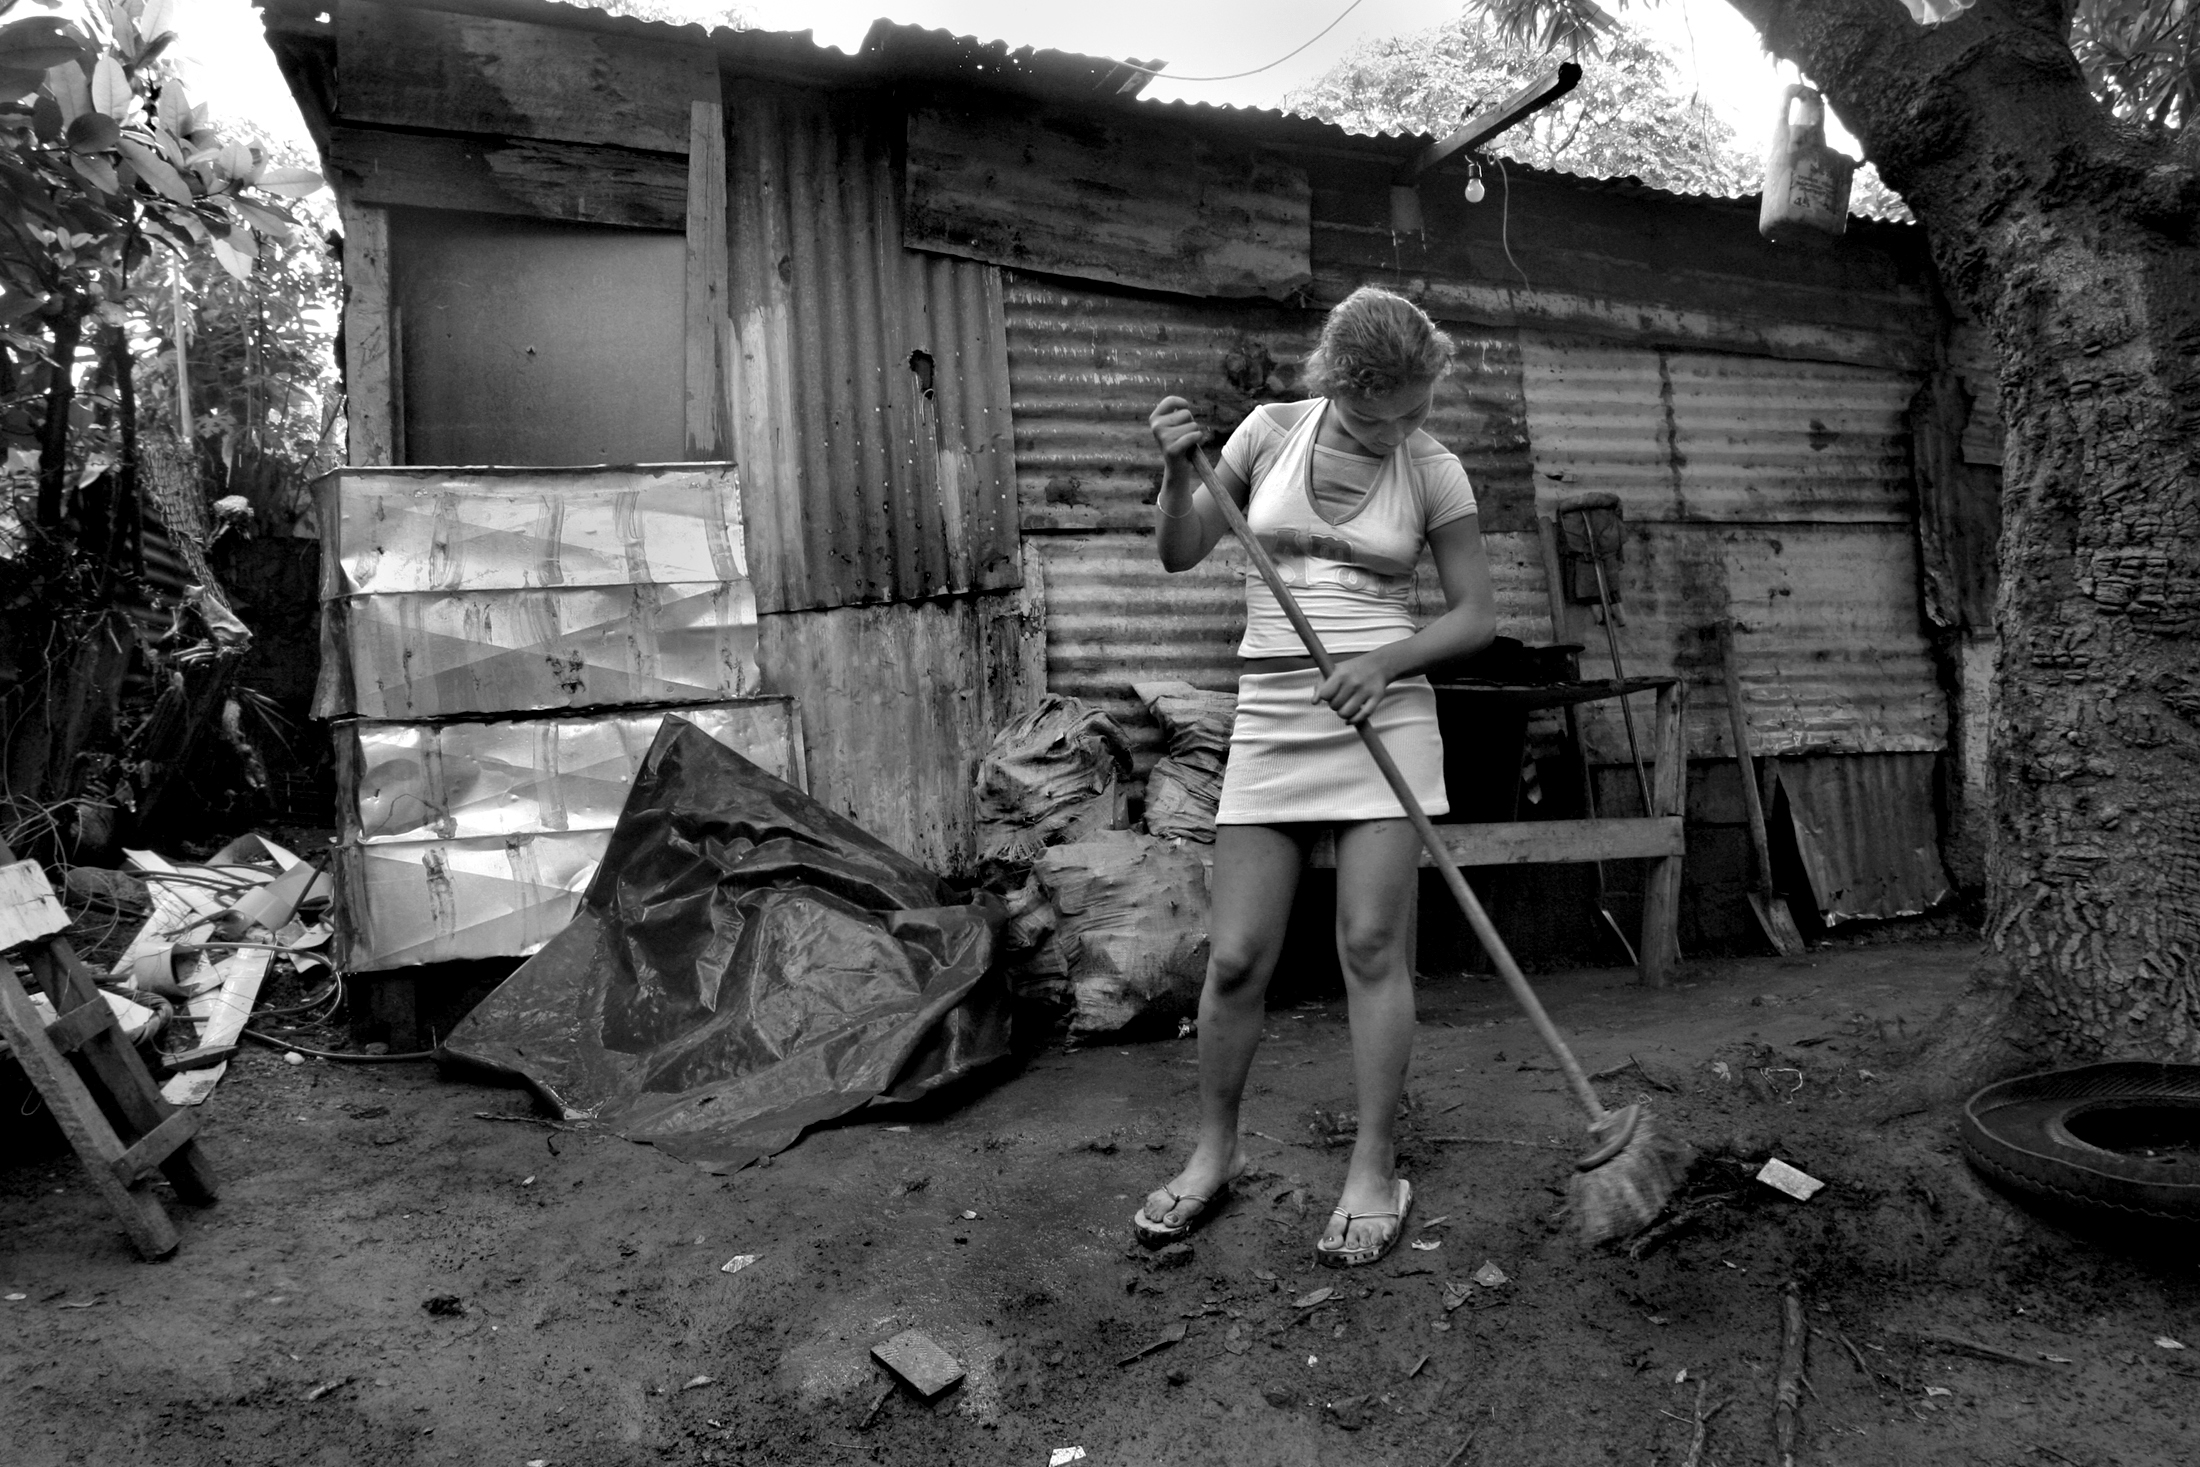 """Meiling, 15, a child prostitute, sweeps outside of her home. """"I'm in the 4th grade and I use the money sometimes to buy my notebooks. I go to the afternoon school shift. We'd all be starving and I'd rather do what I do than see my siblings go hungry."""""""